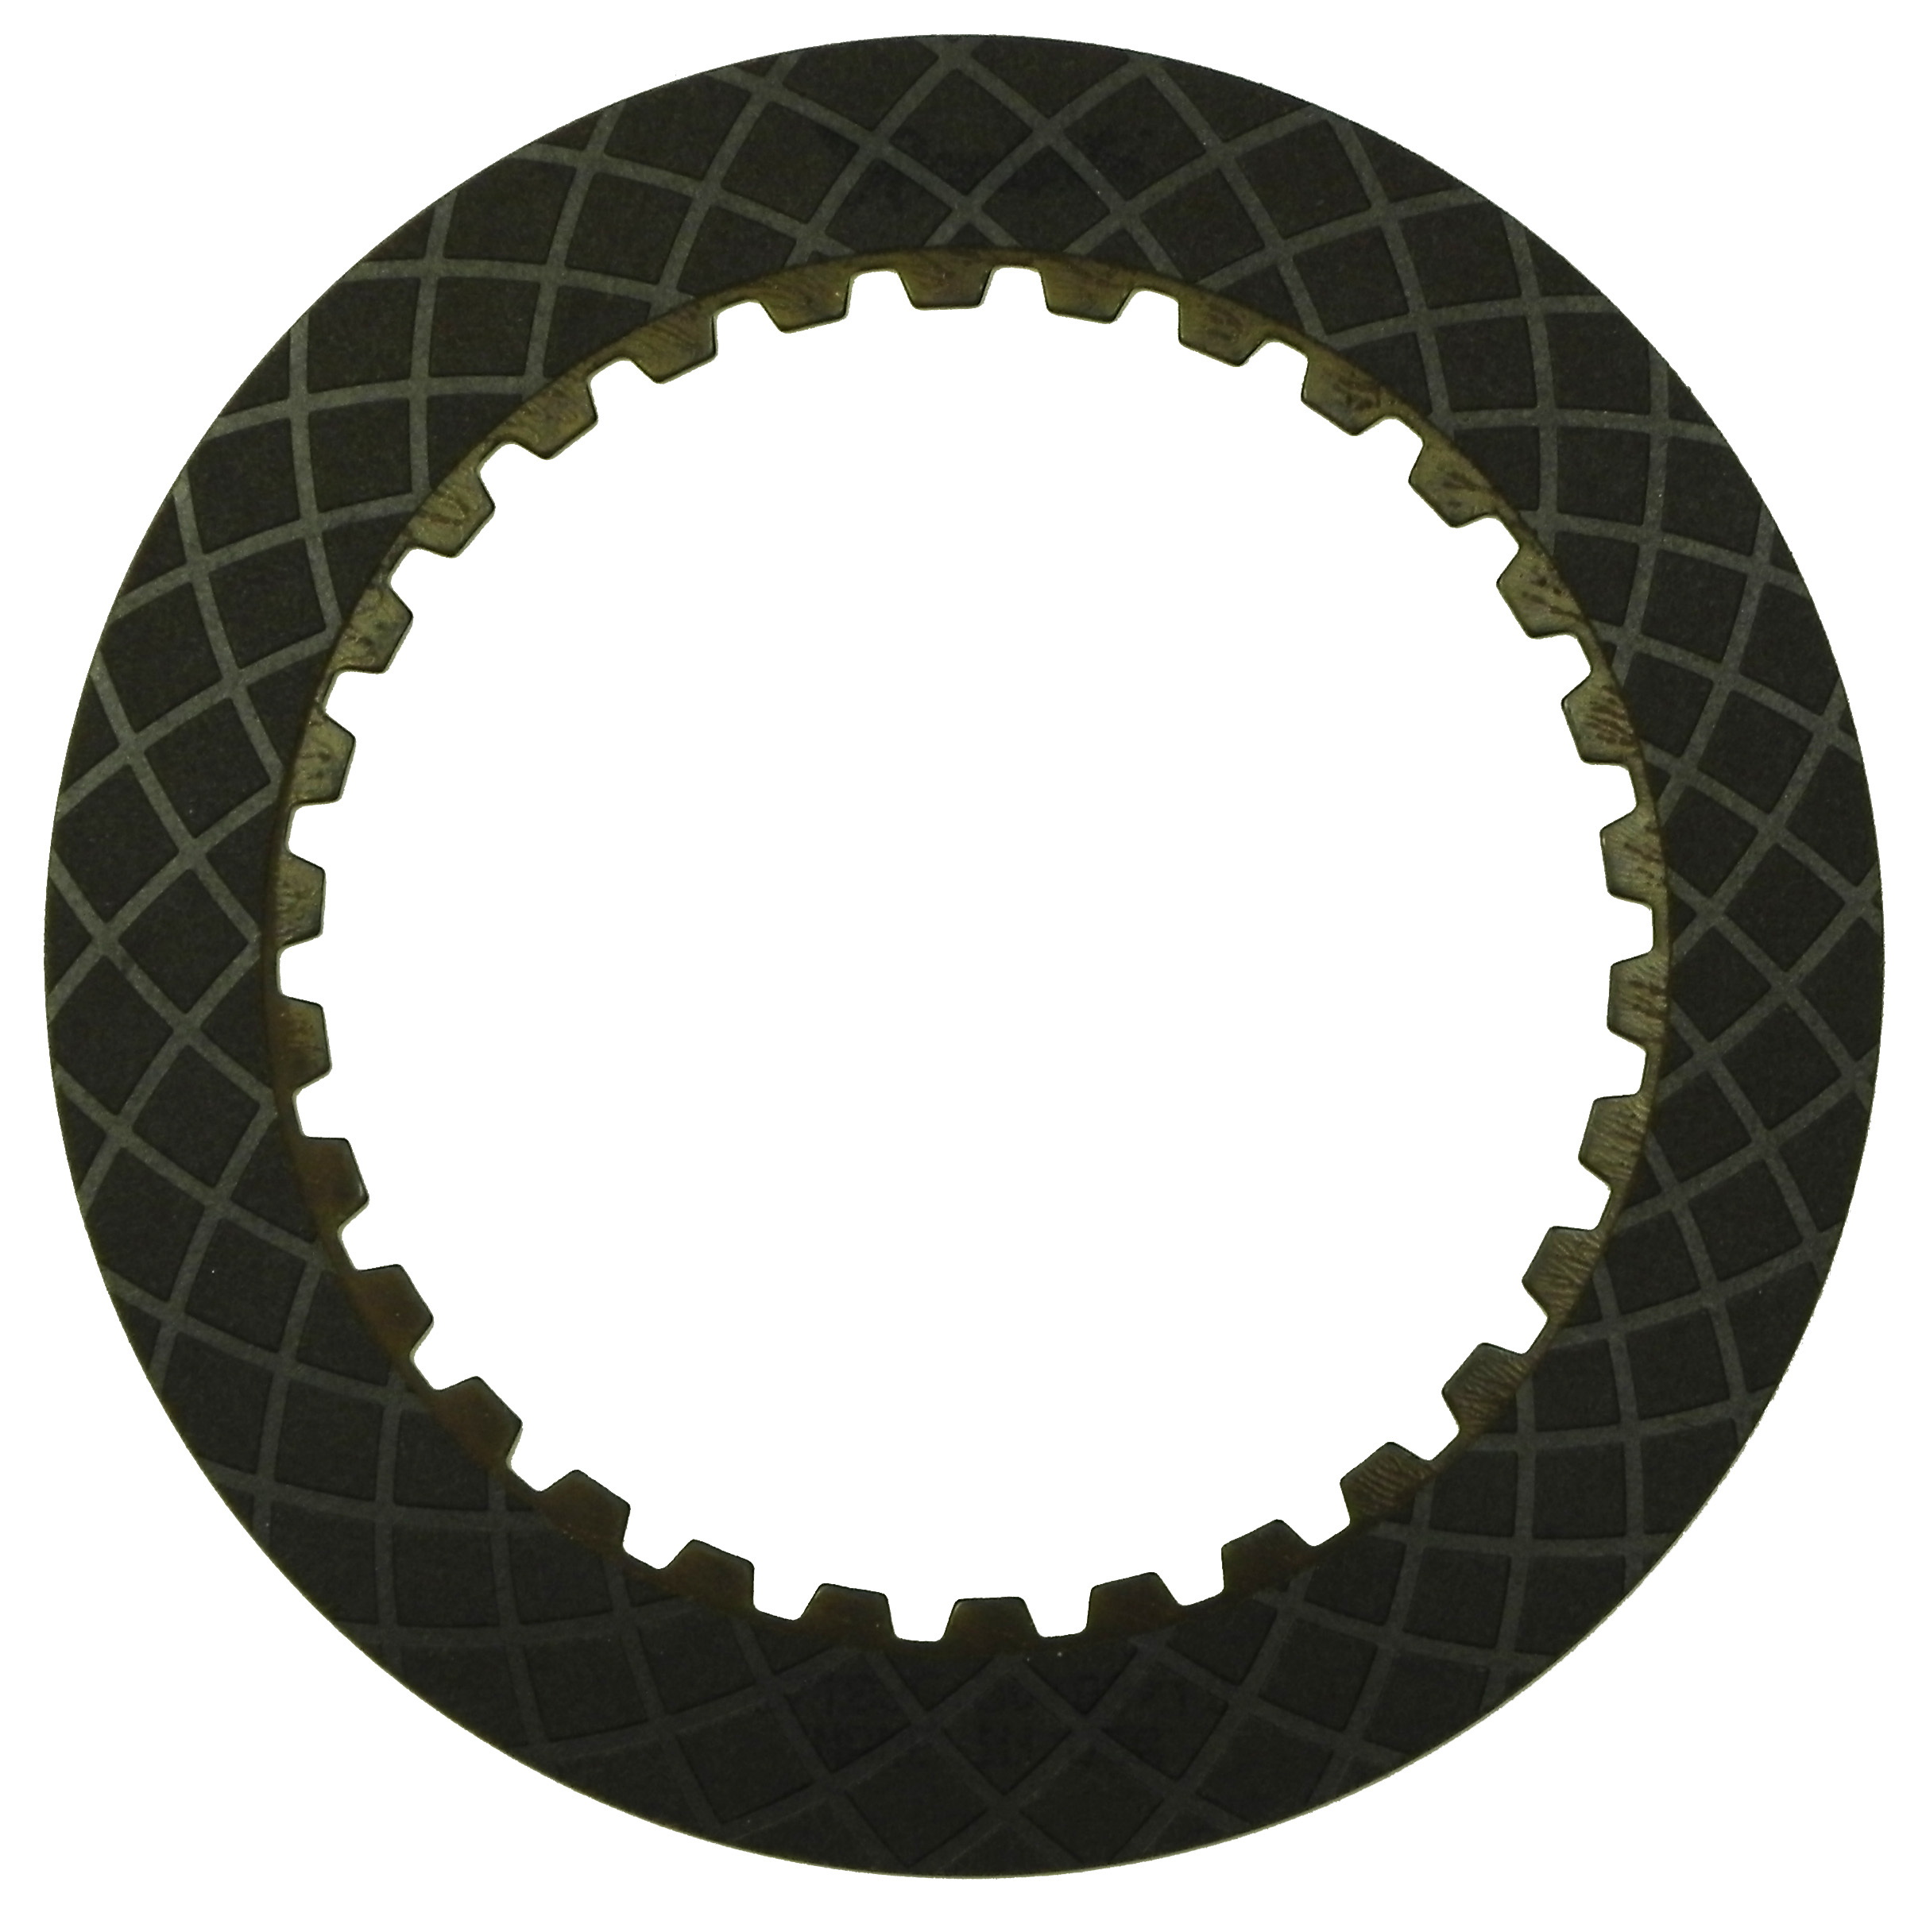 5 SPEED MGHA (01), BGHA (02), BYBA (02-04), BVGA (02-05), BGRA (05-06), BVLA (06) GPX Friction Clutch Plate